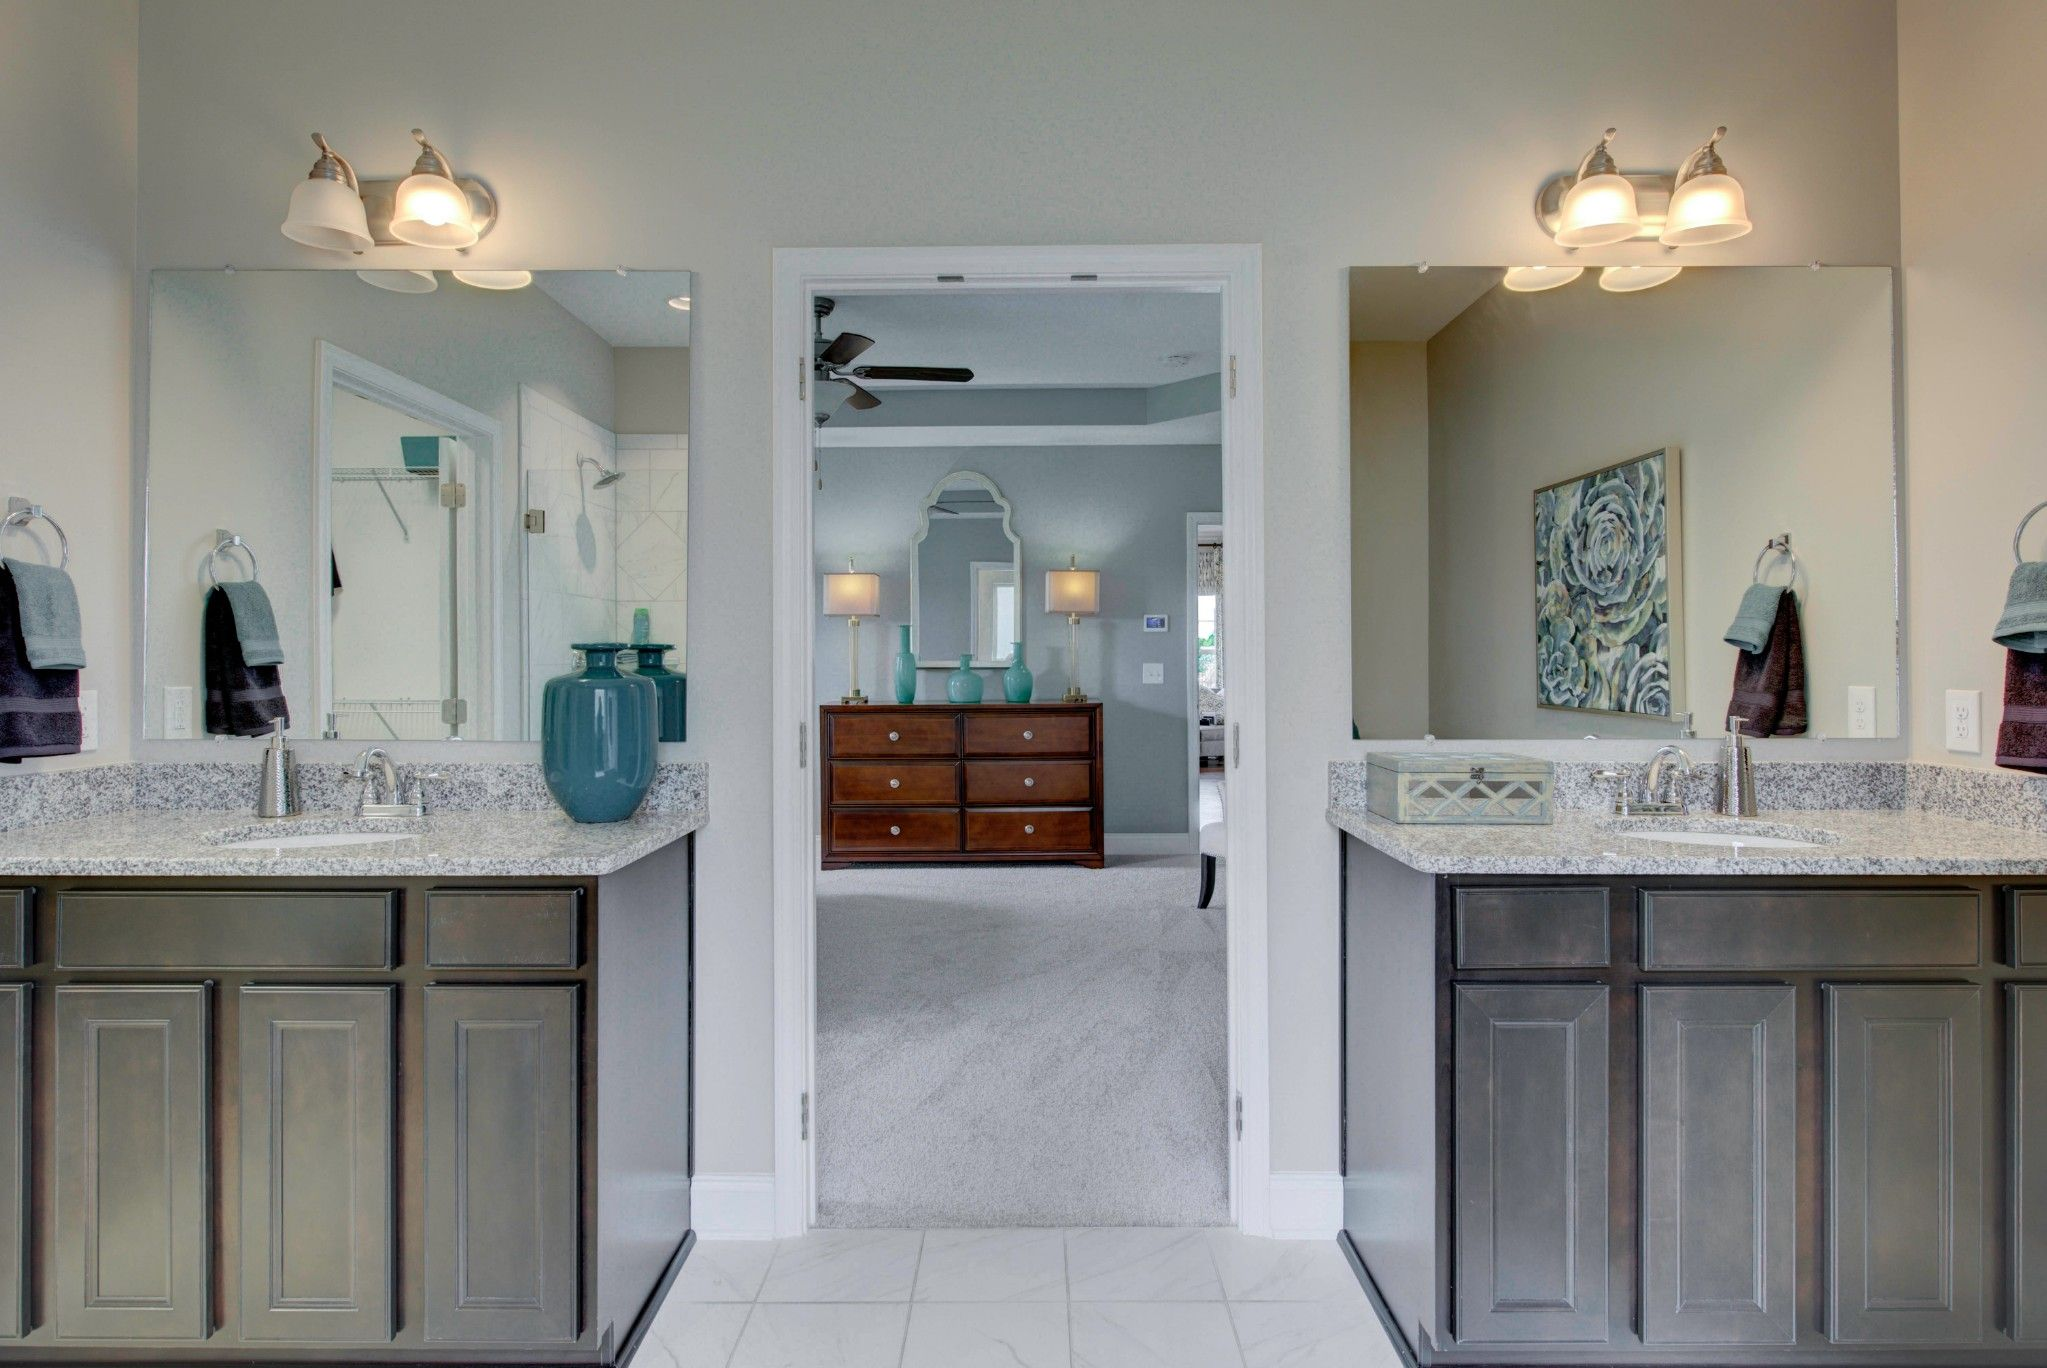 Bathroom featured in The Eliot By Goodall Homes in Nashville, TN